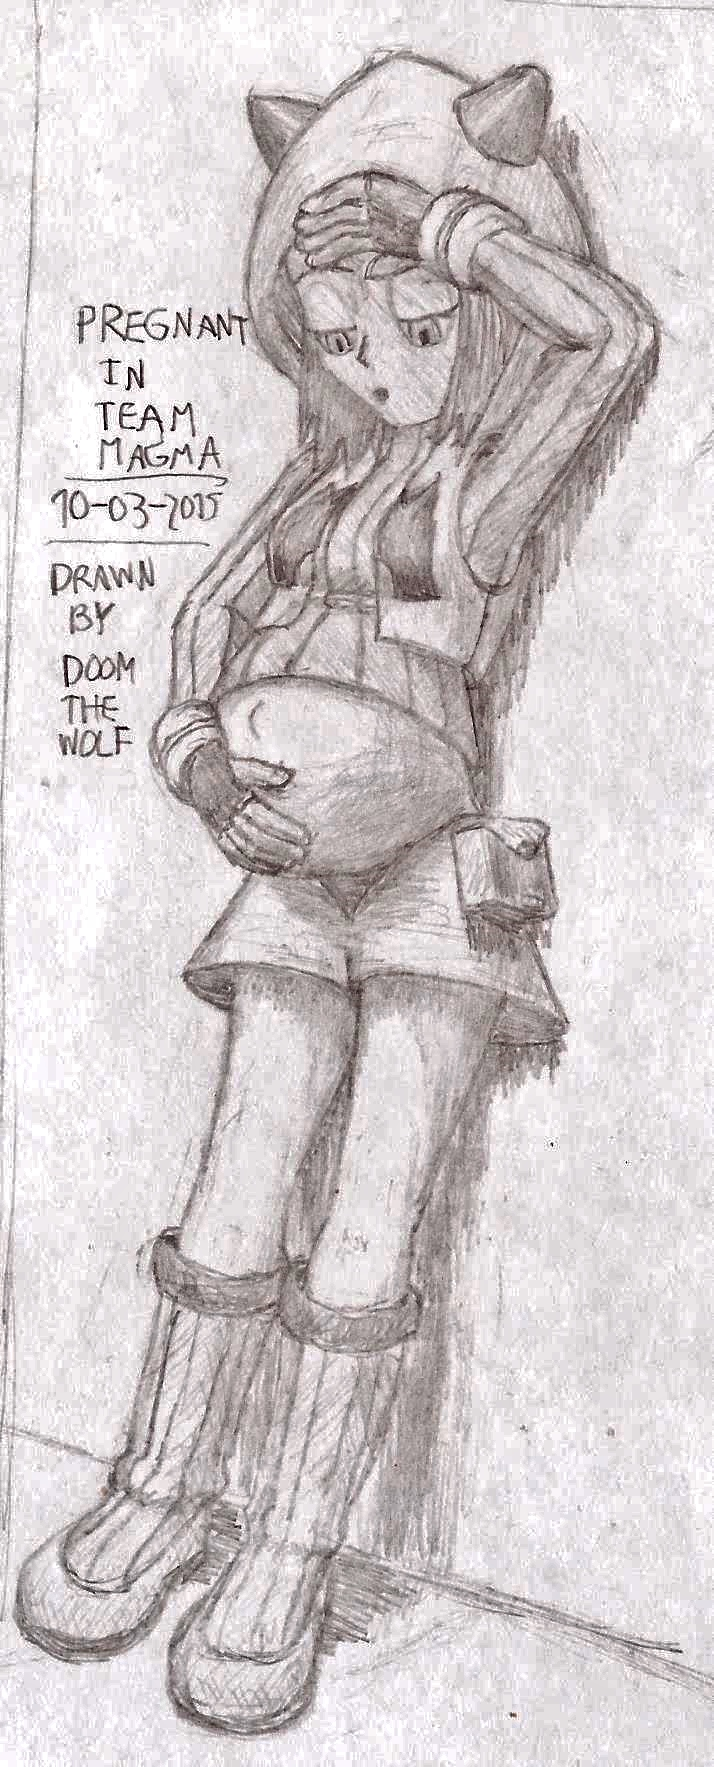 Pregnant In Team Magma By Doom The Wolf On Deviantart